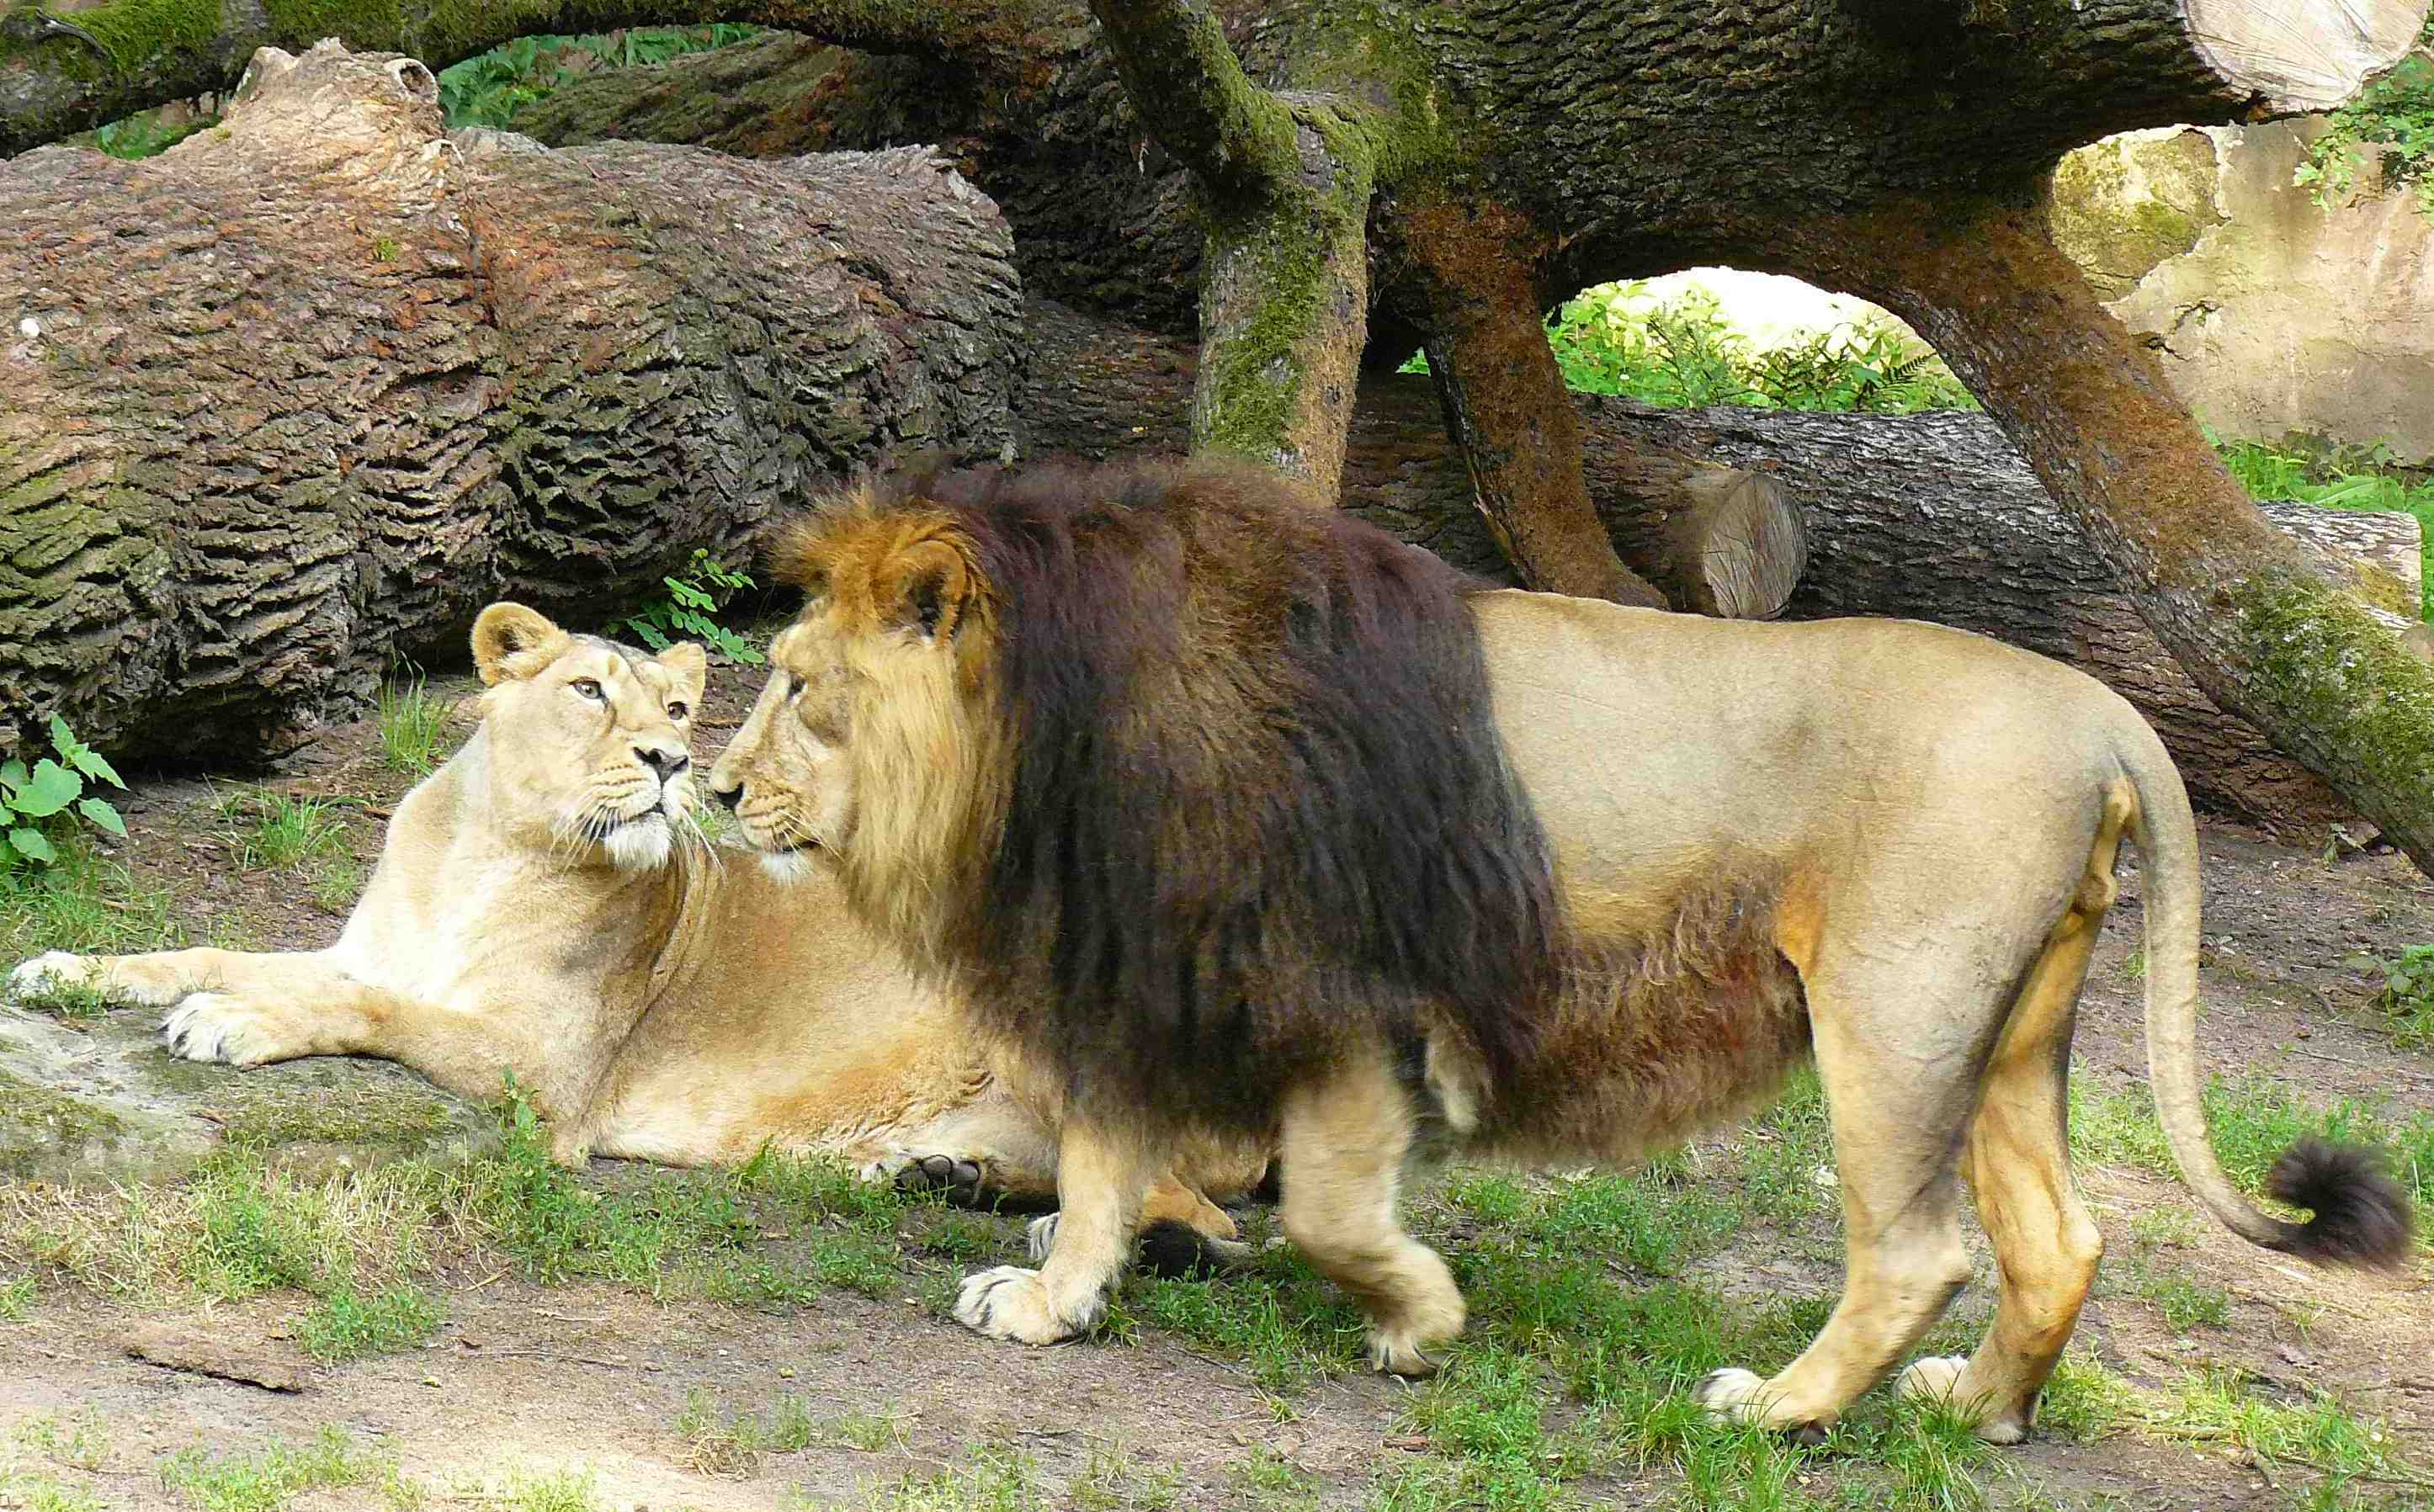 http://upload.wikimedia.org/wikipedia/commons/4/47/Panthera_leo_persica_Nuremberg_Zoo.JPG